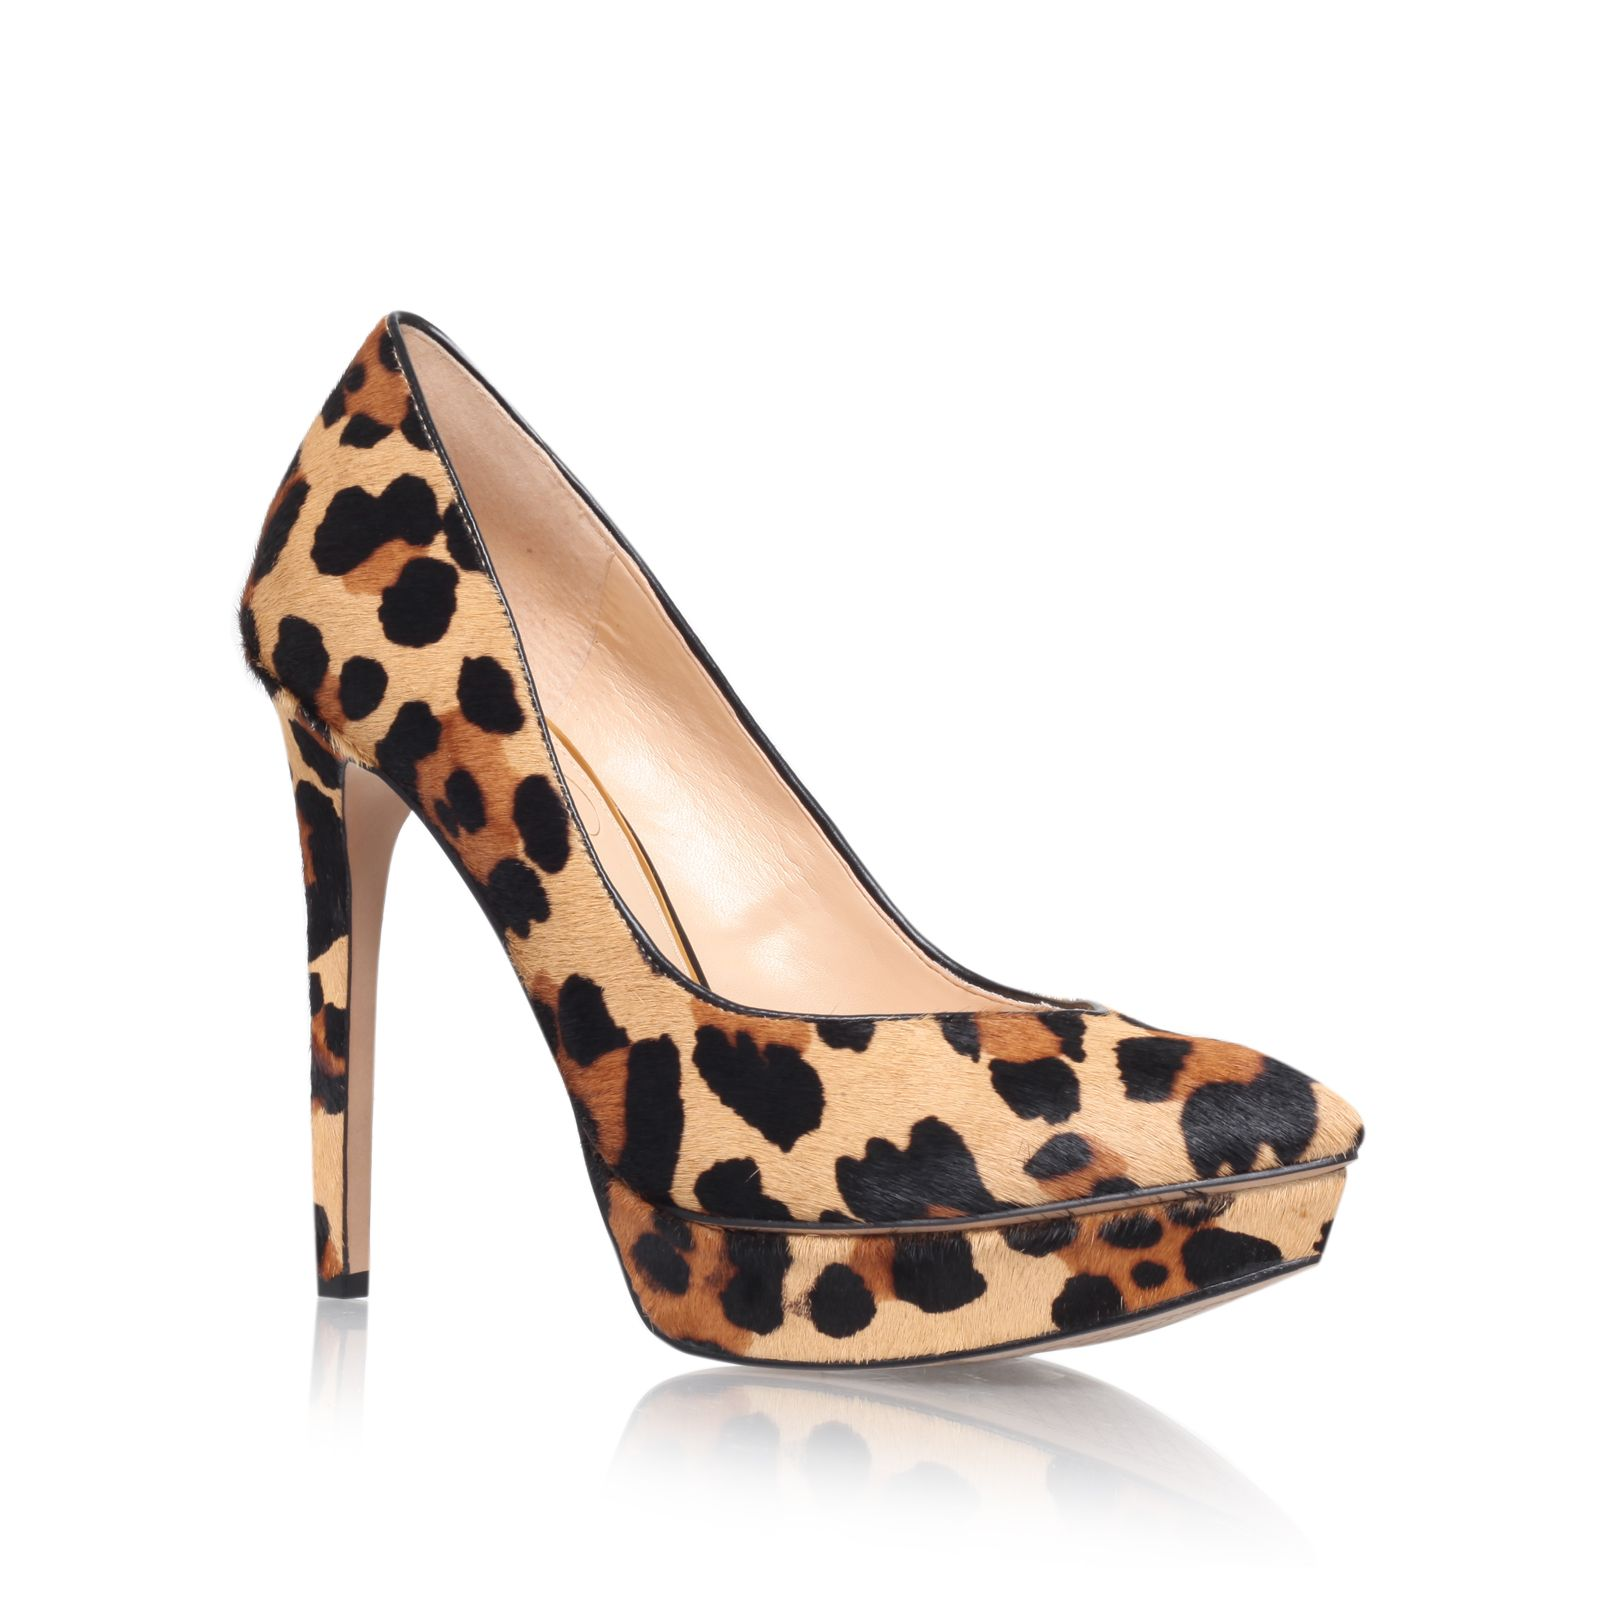 Venisse high heel court shoes